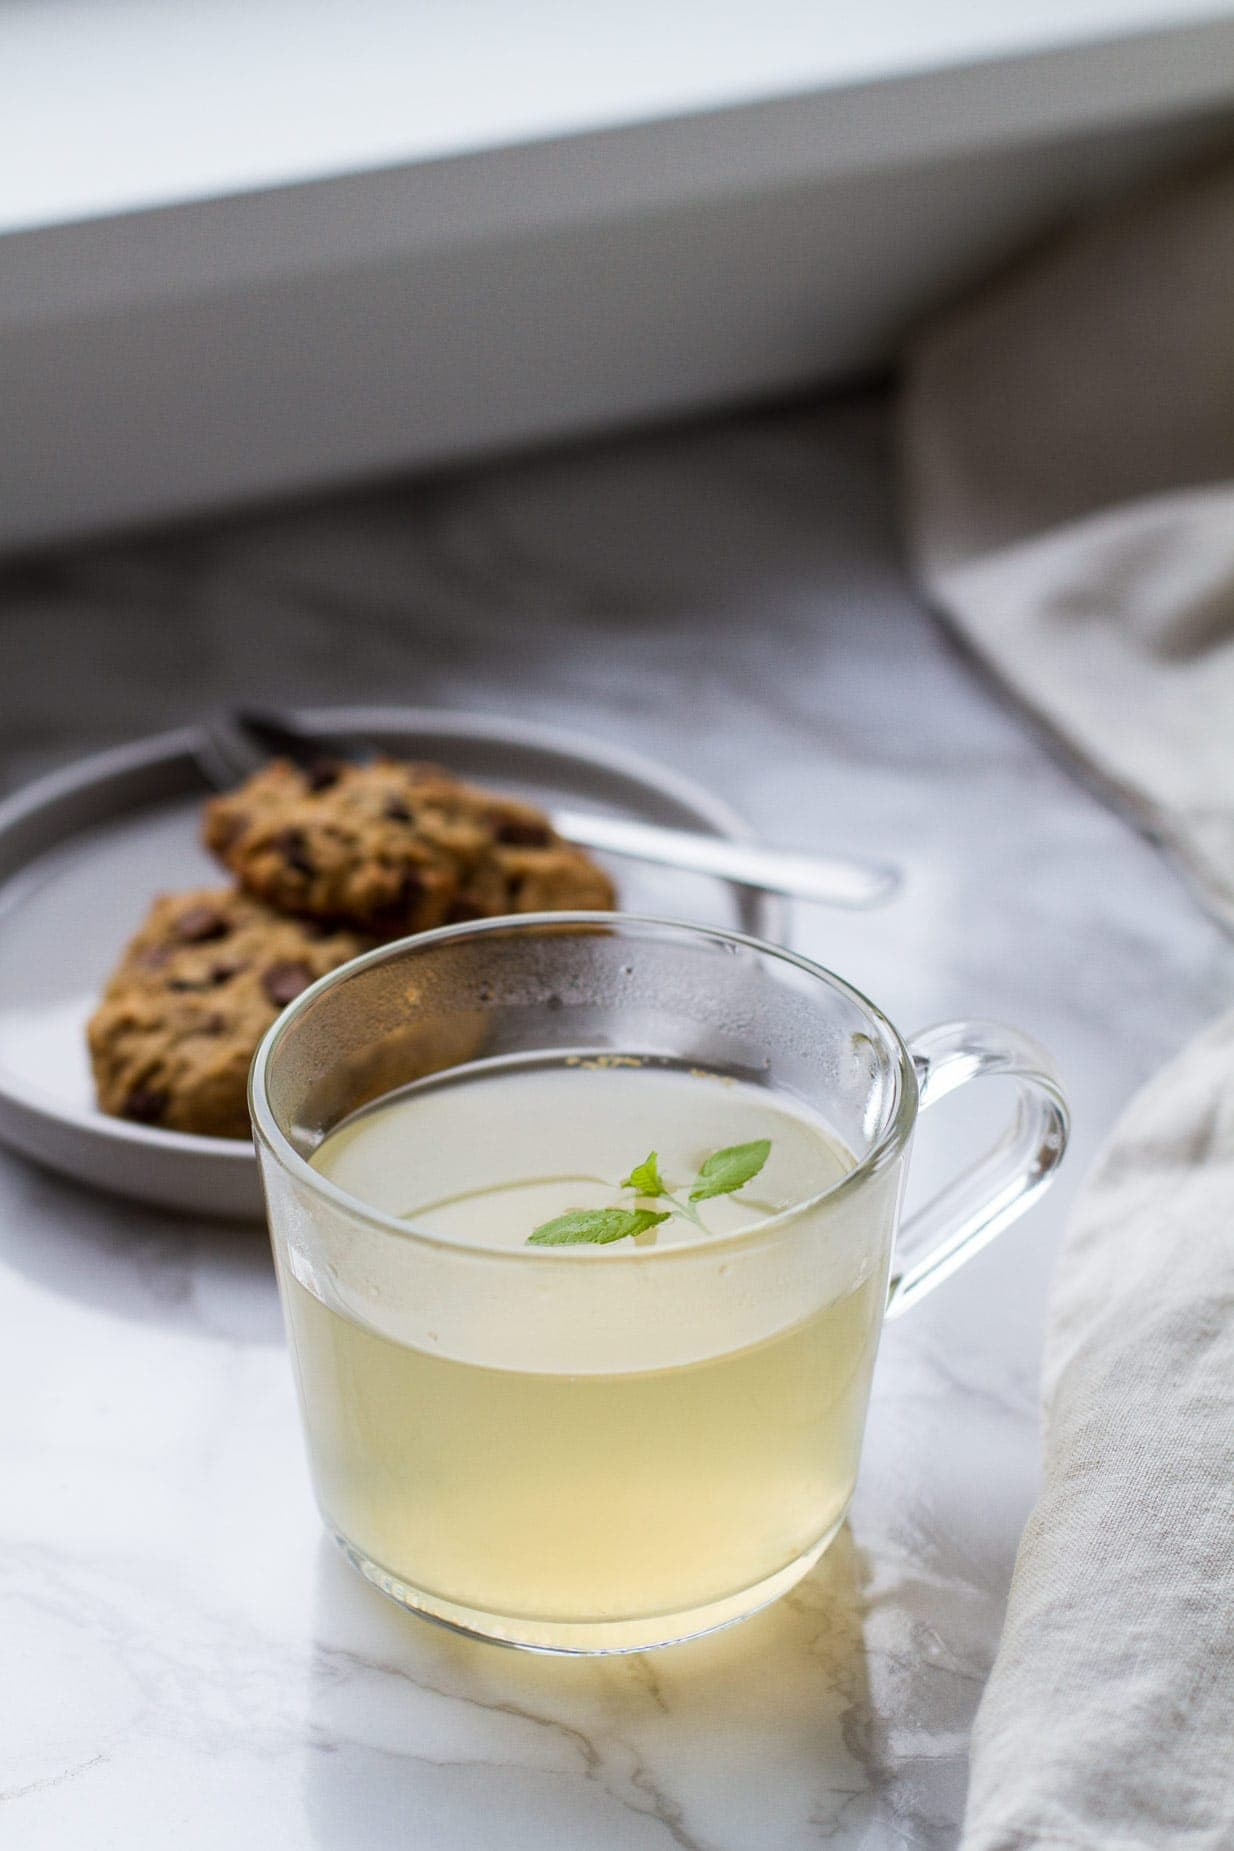 Clear mug with pale yellow drink and lemon verbena garnish. Cookies in the background.